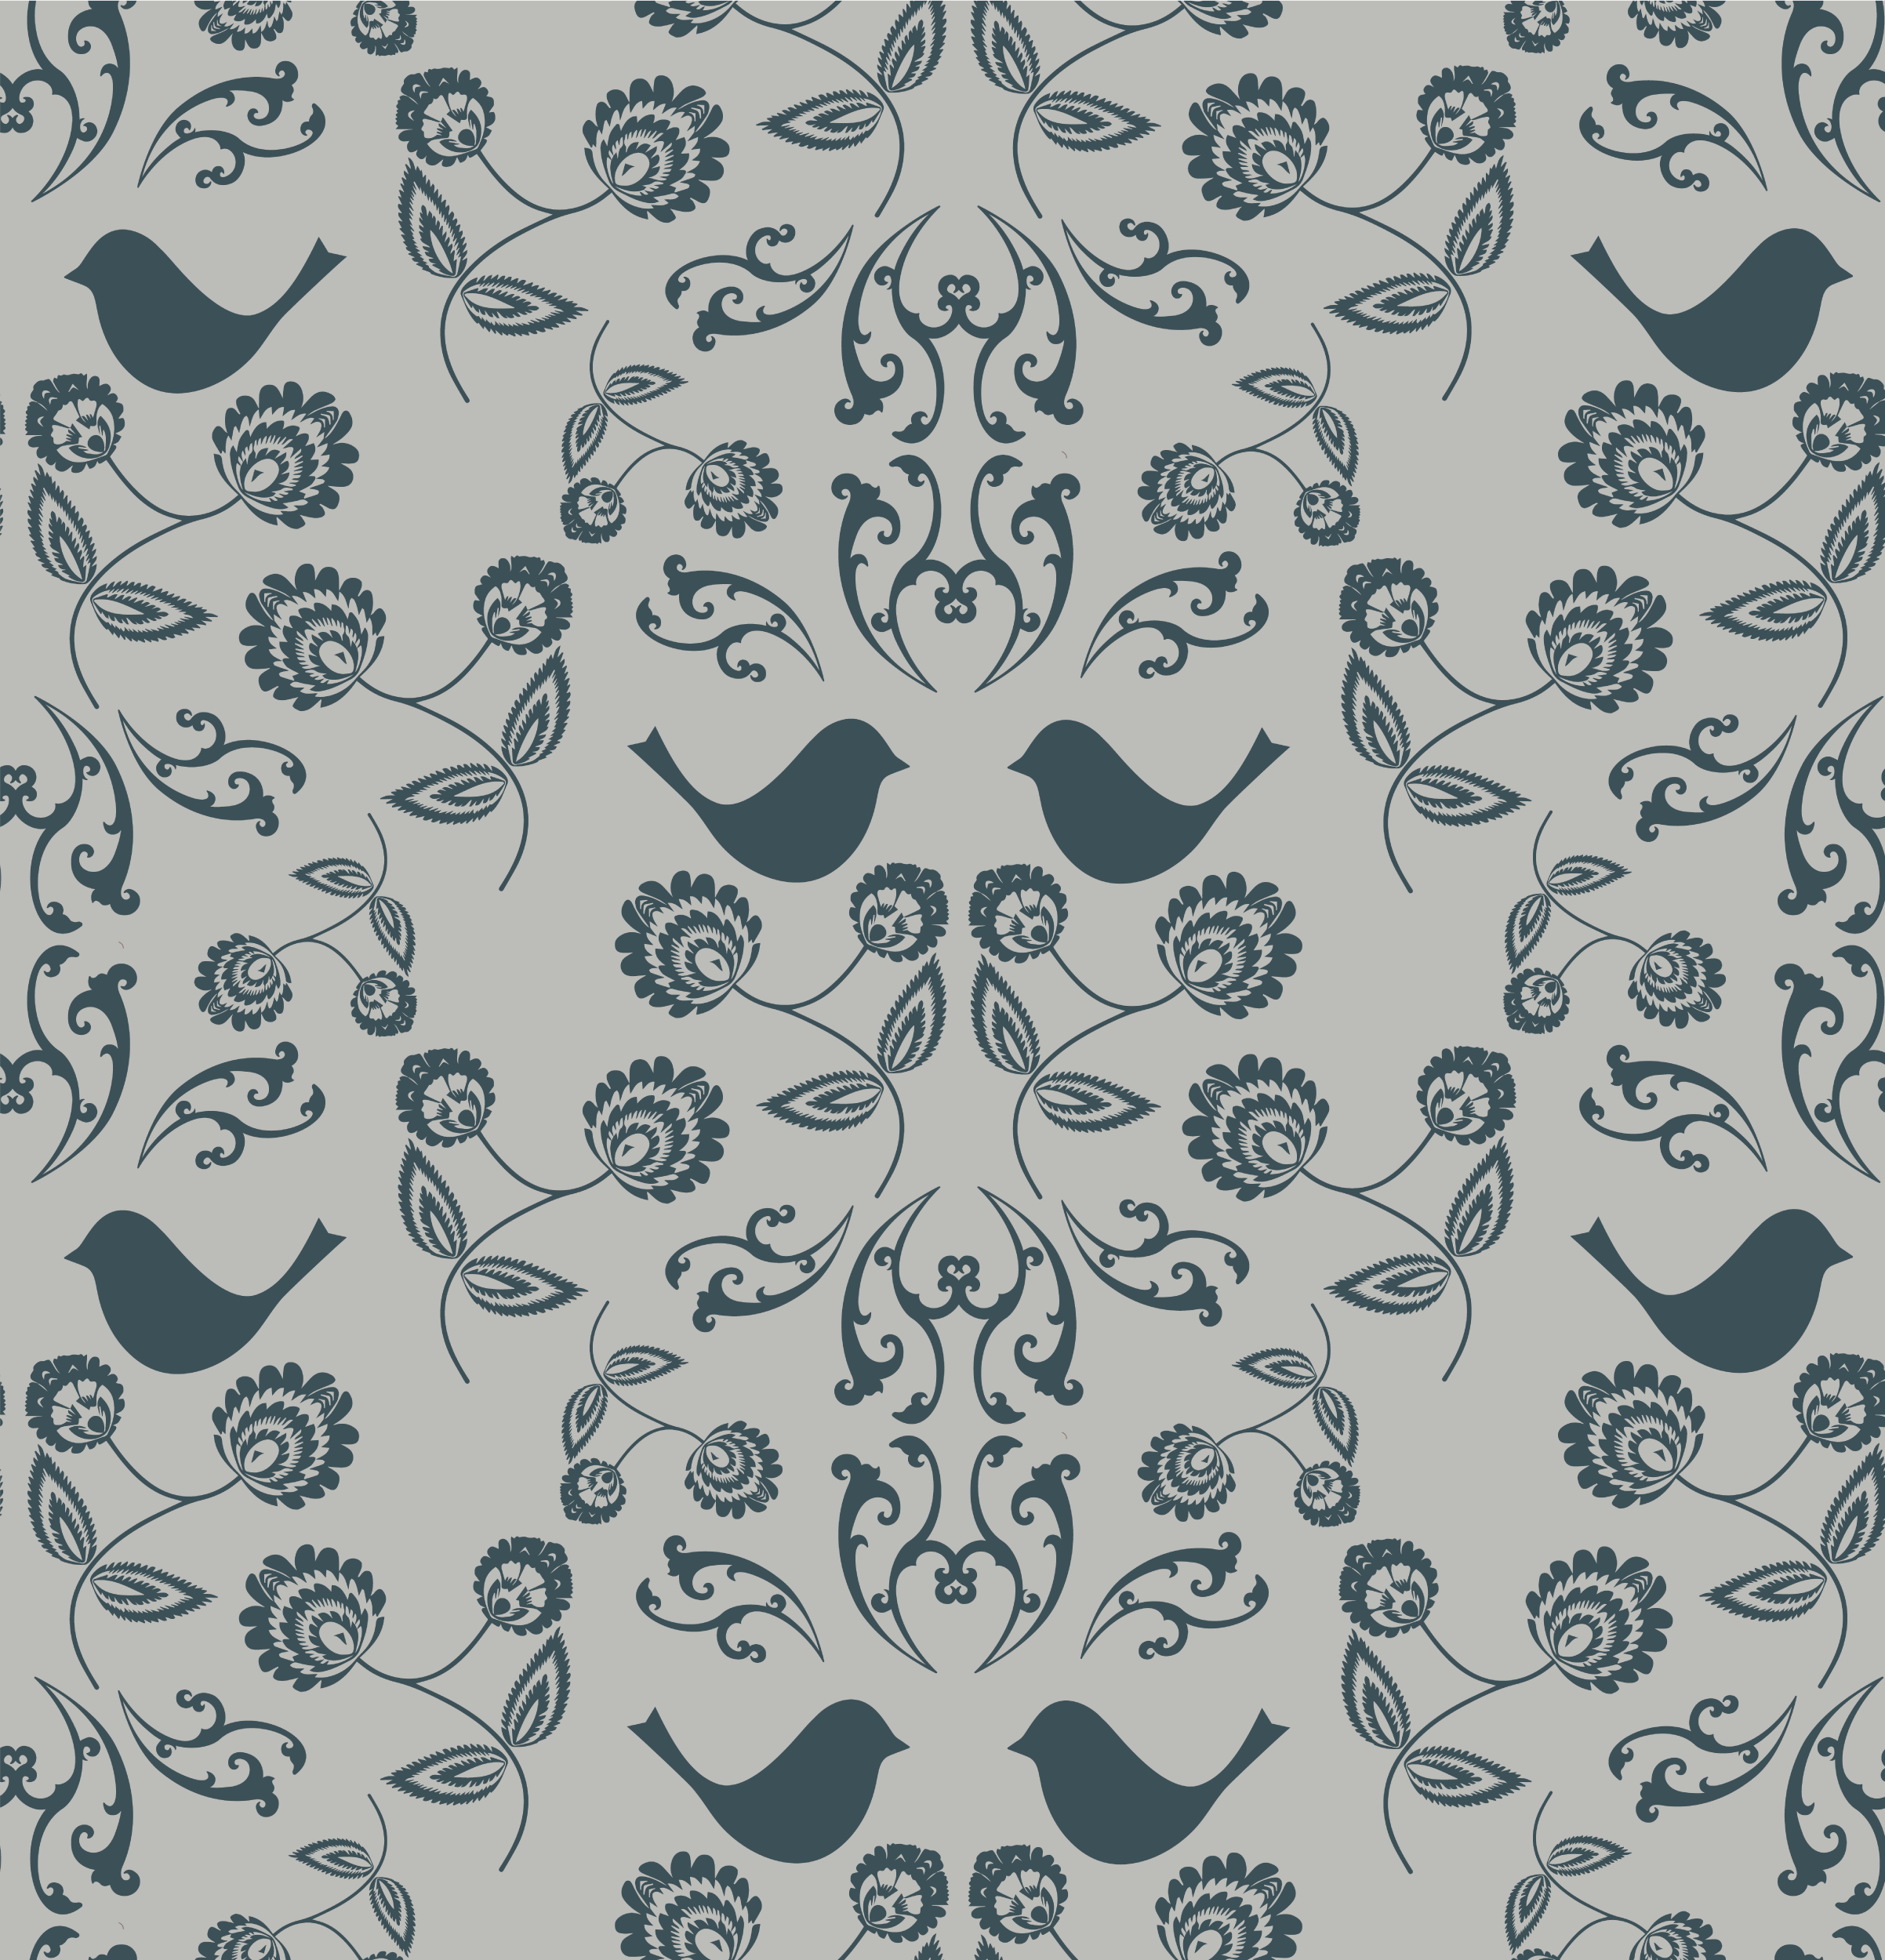 for-web-navy-birds-with-warm-grey-backBird-Pattern-2.png